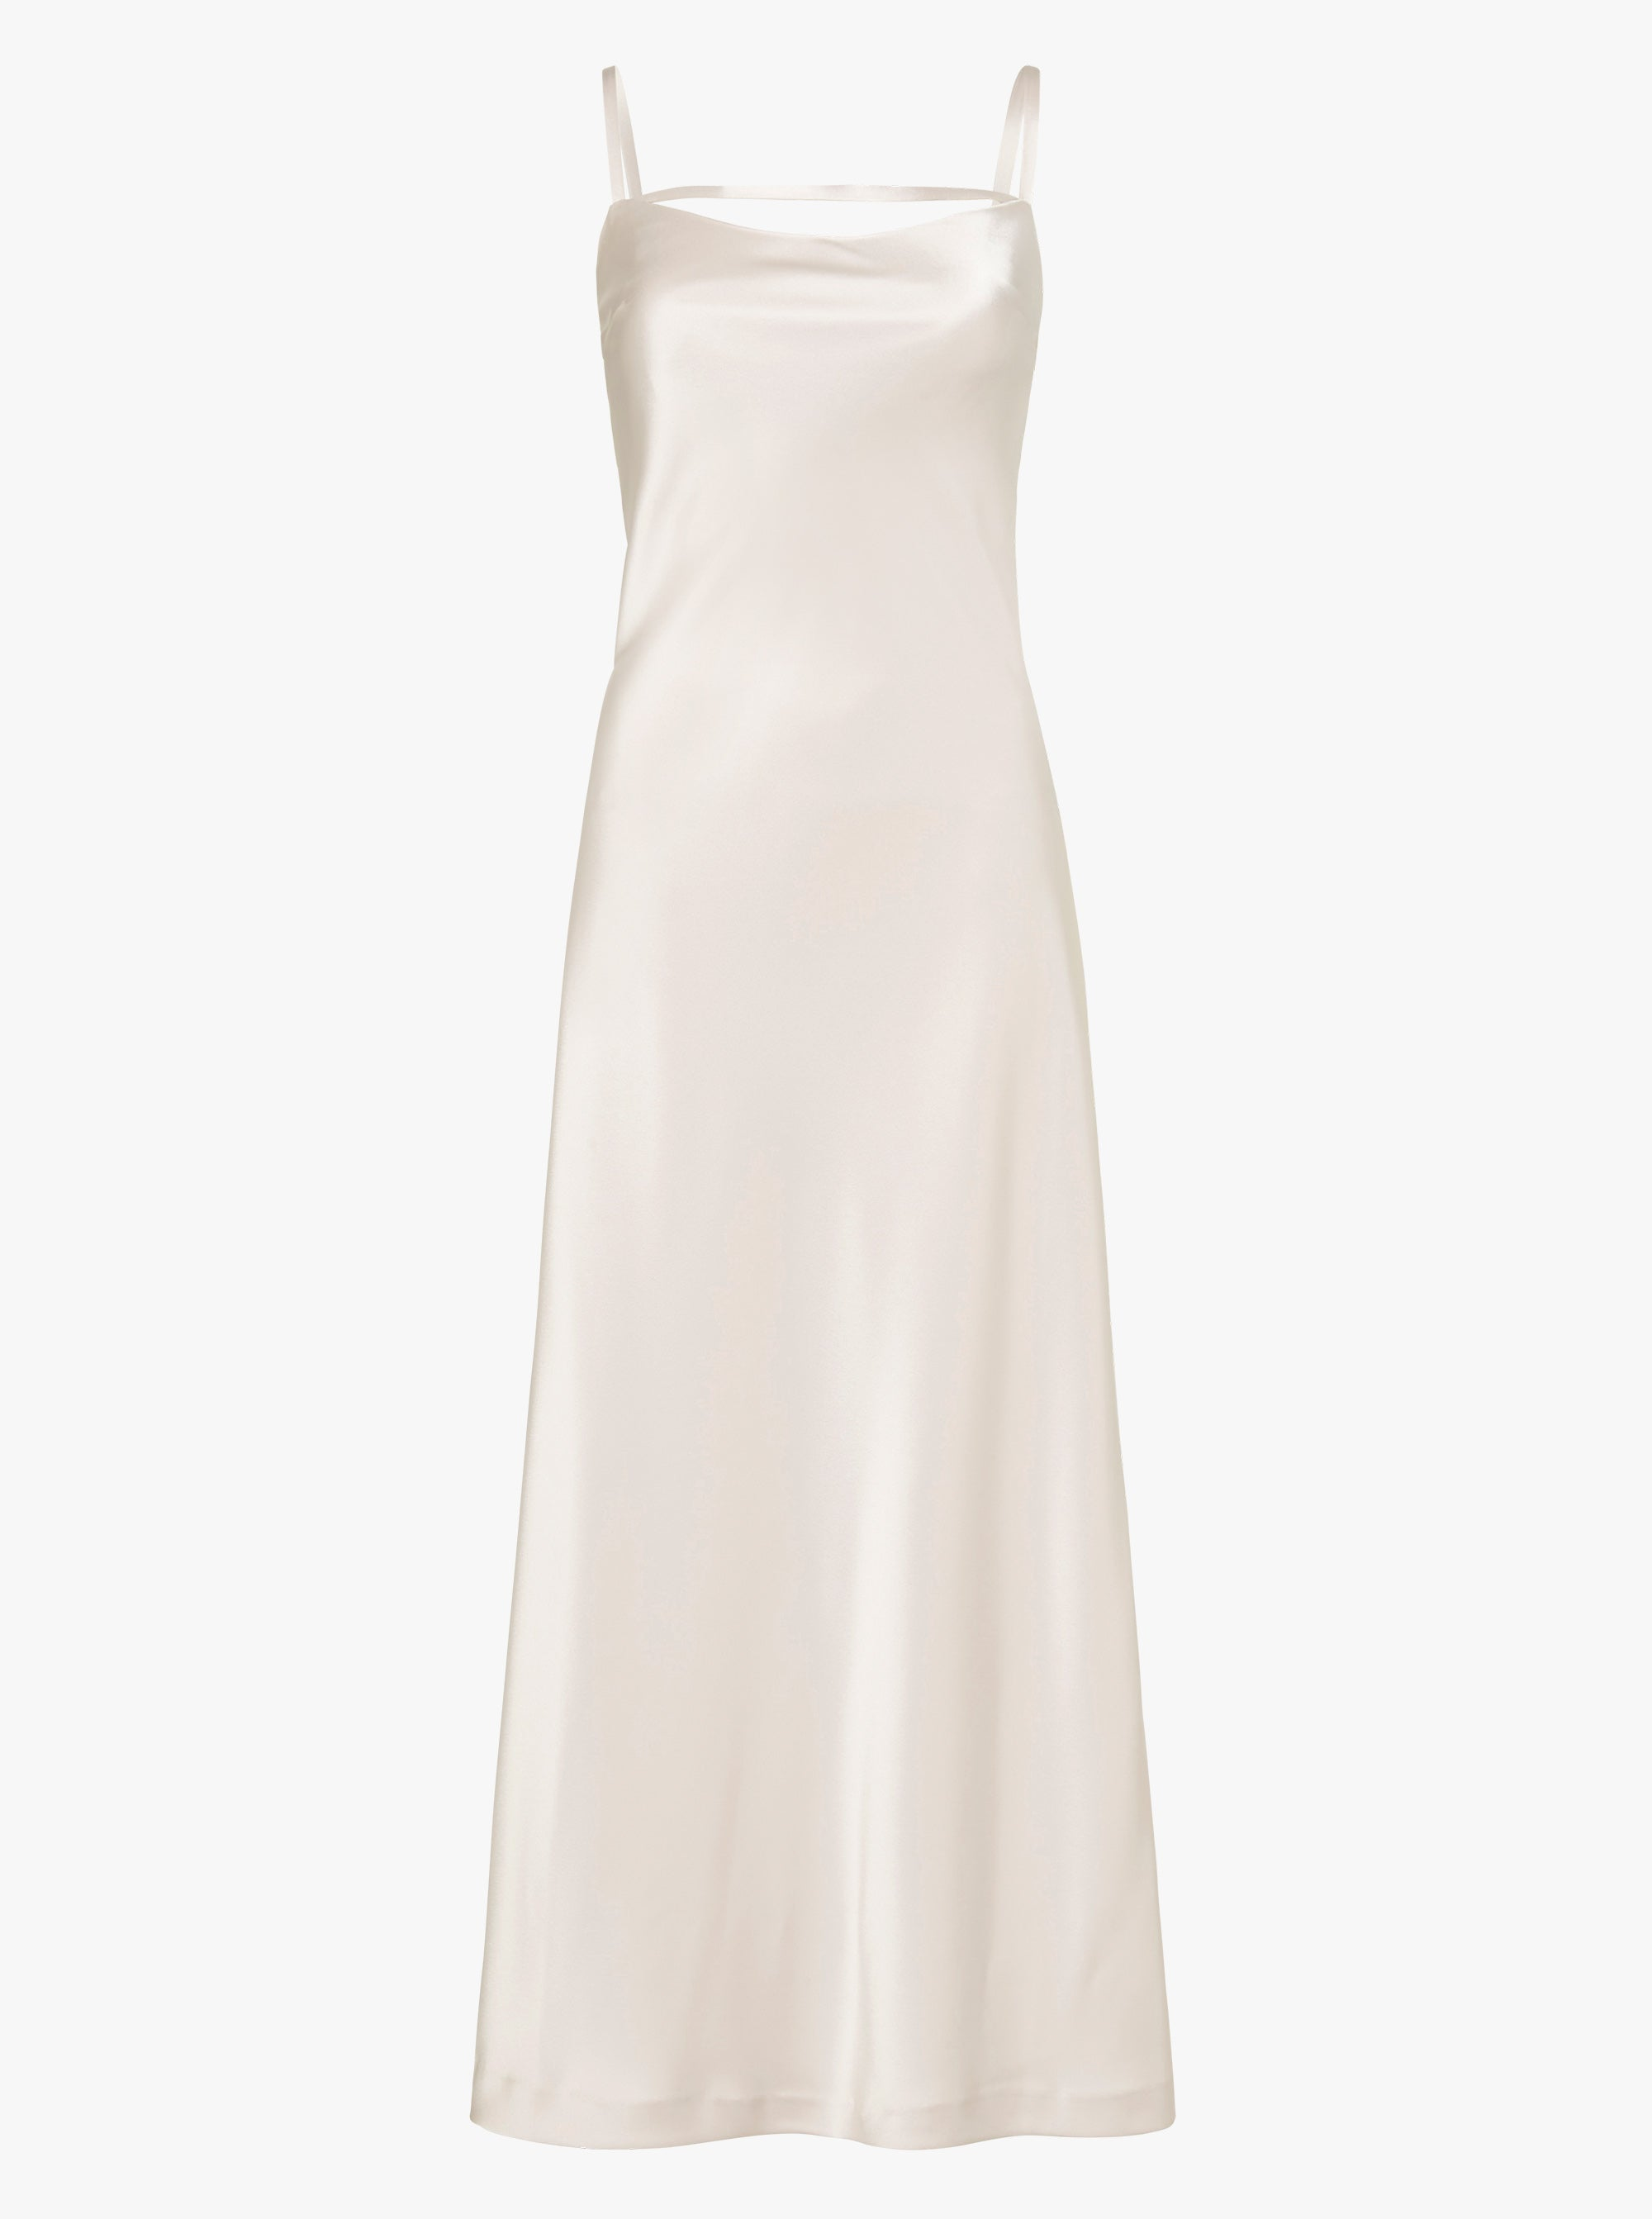 Molten Satin Midi Dress